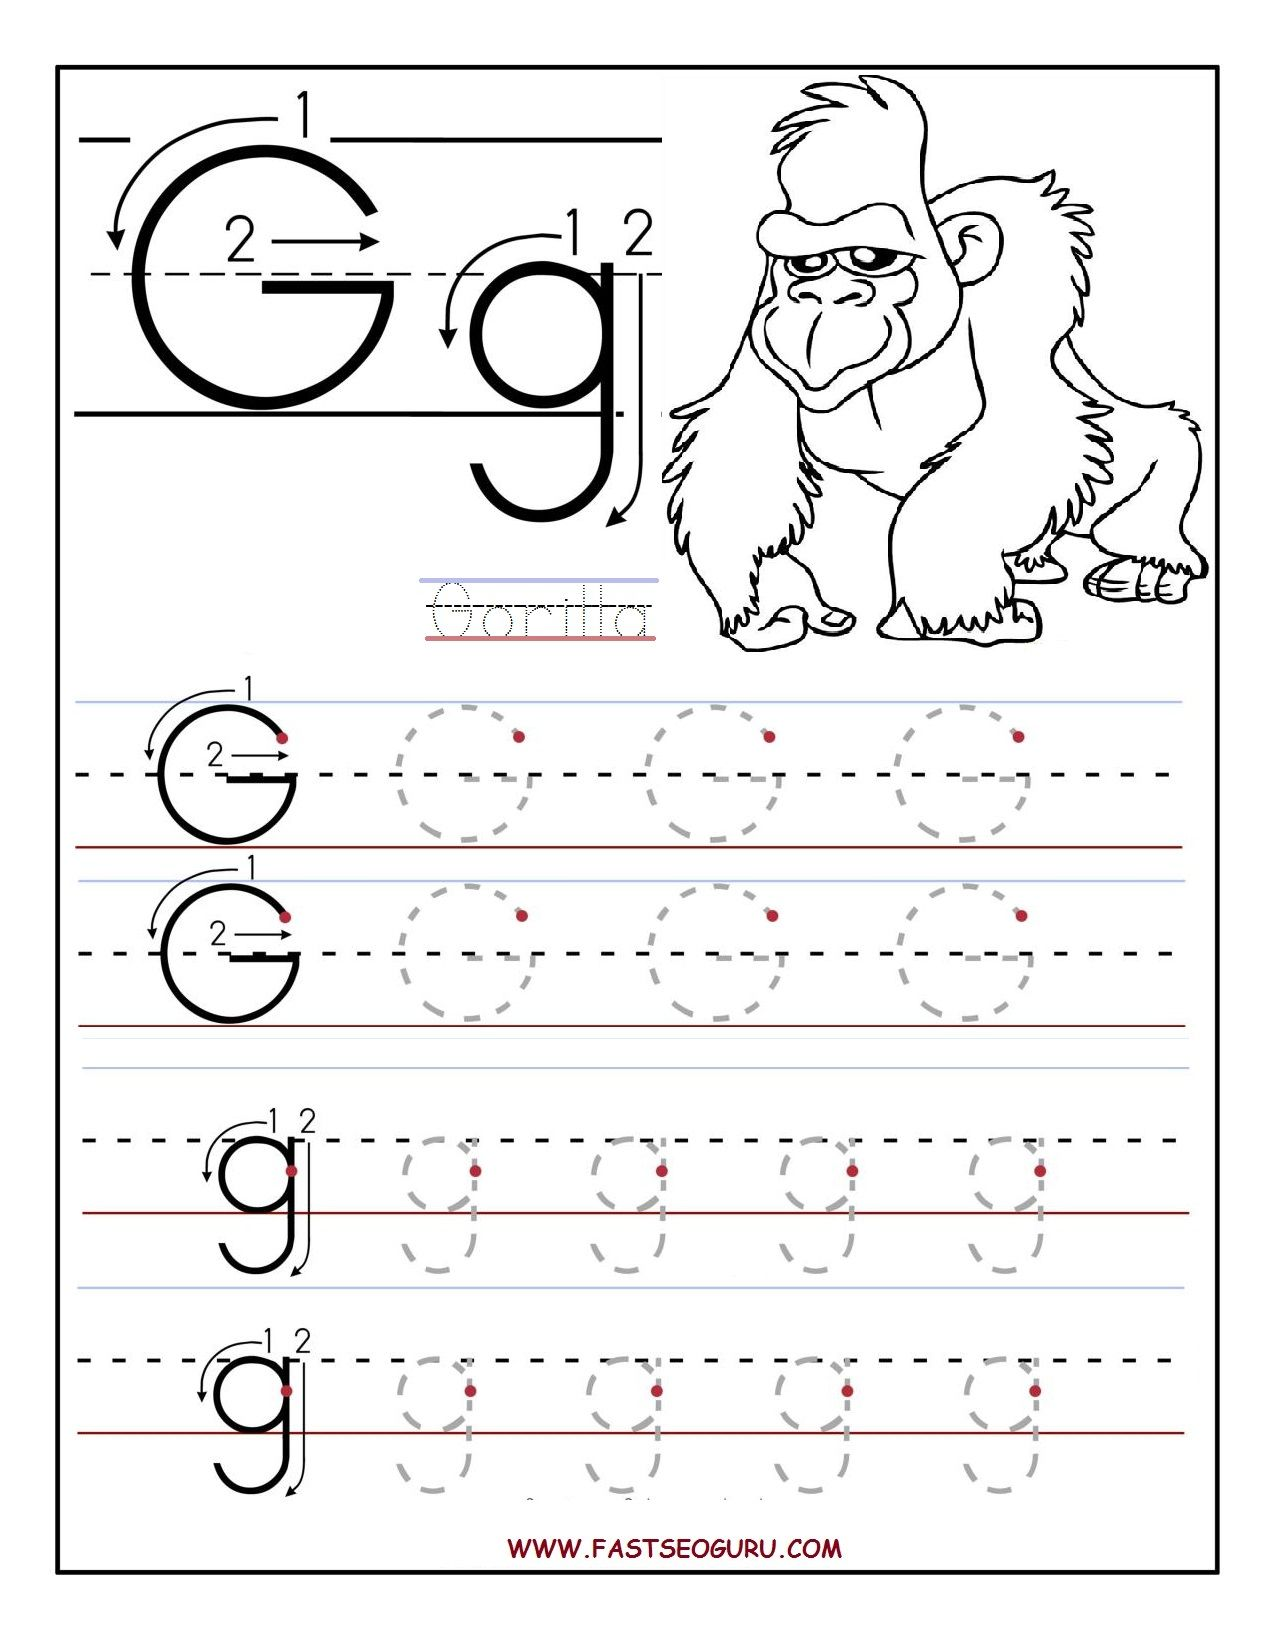 Printable letter G tracing worksheets for preschool – Letter G Worksheets for Kindergarten